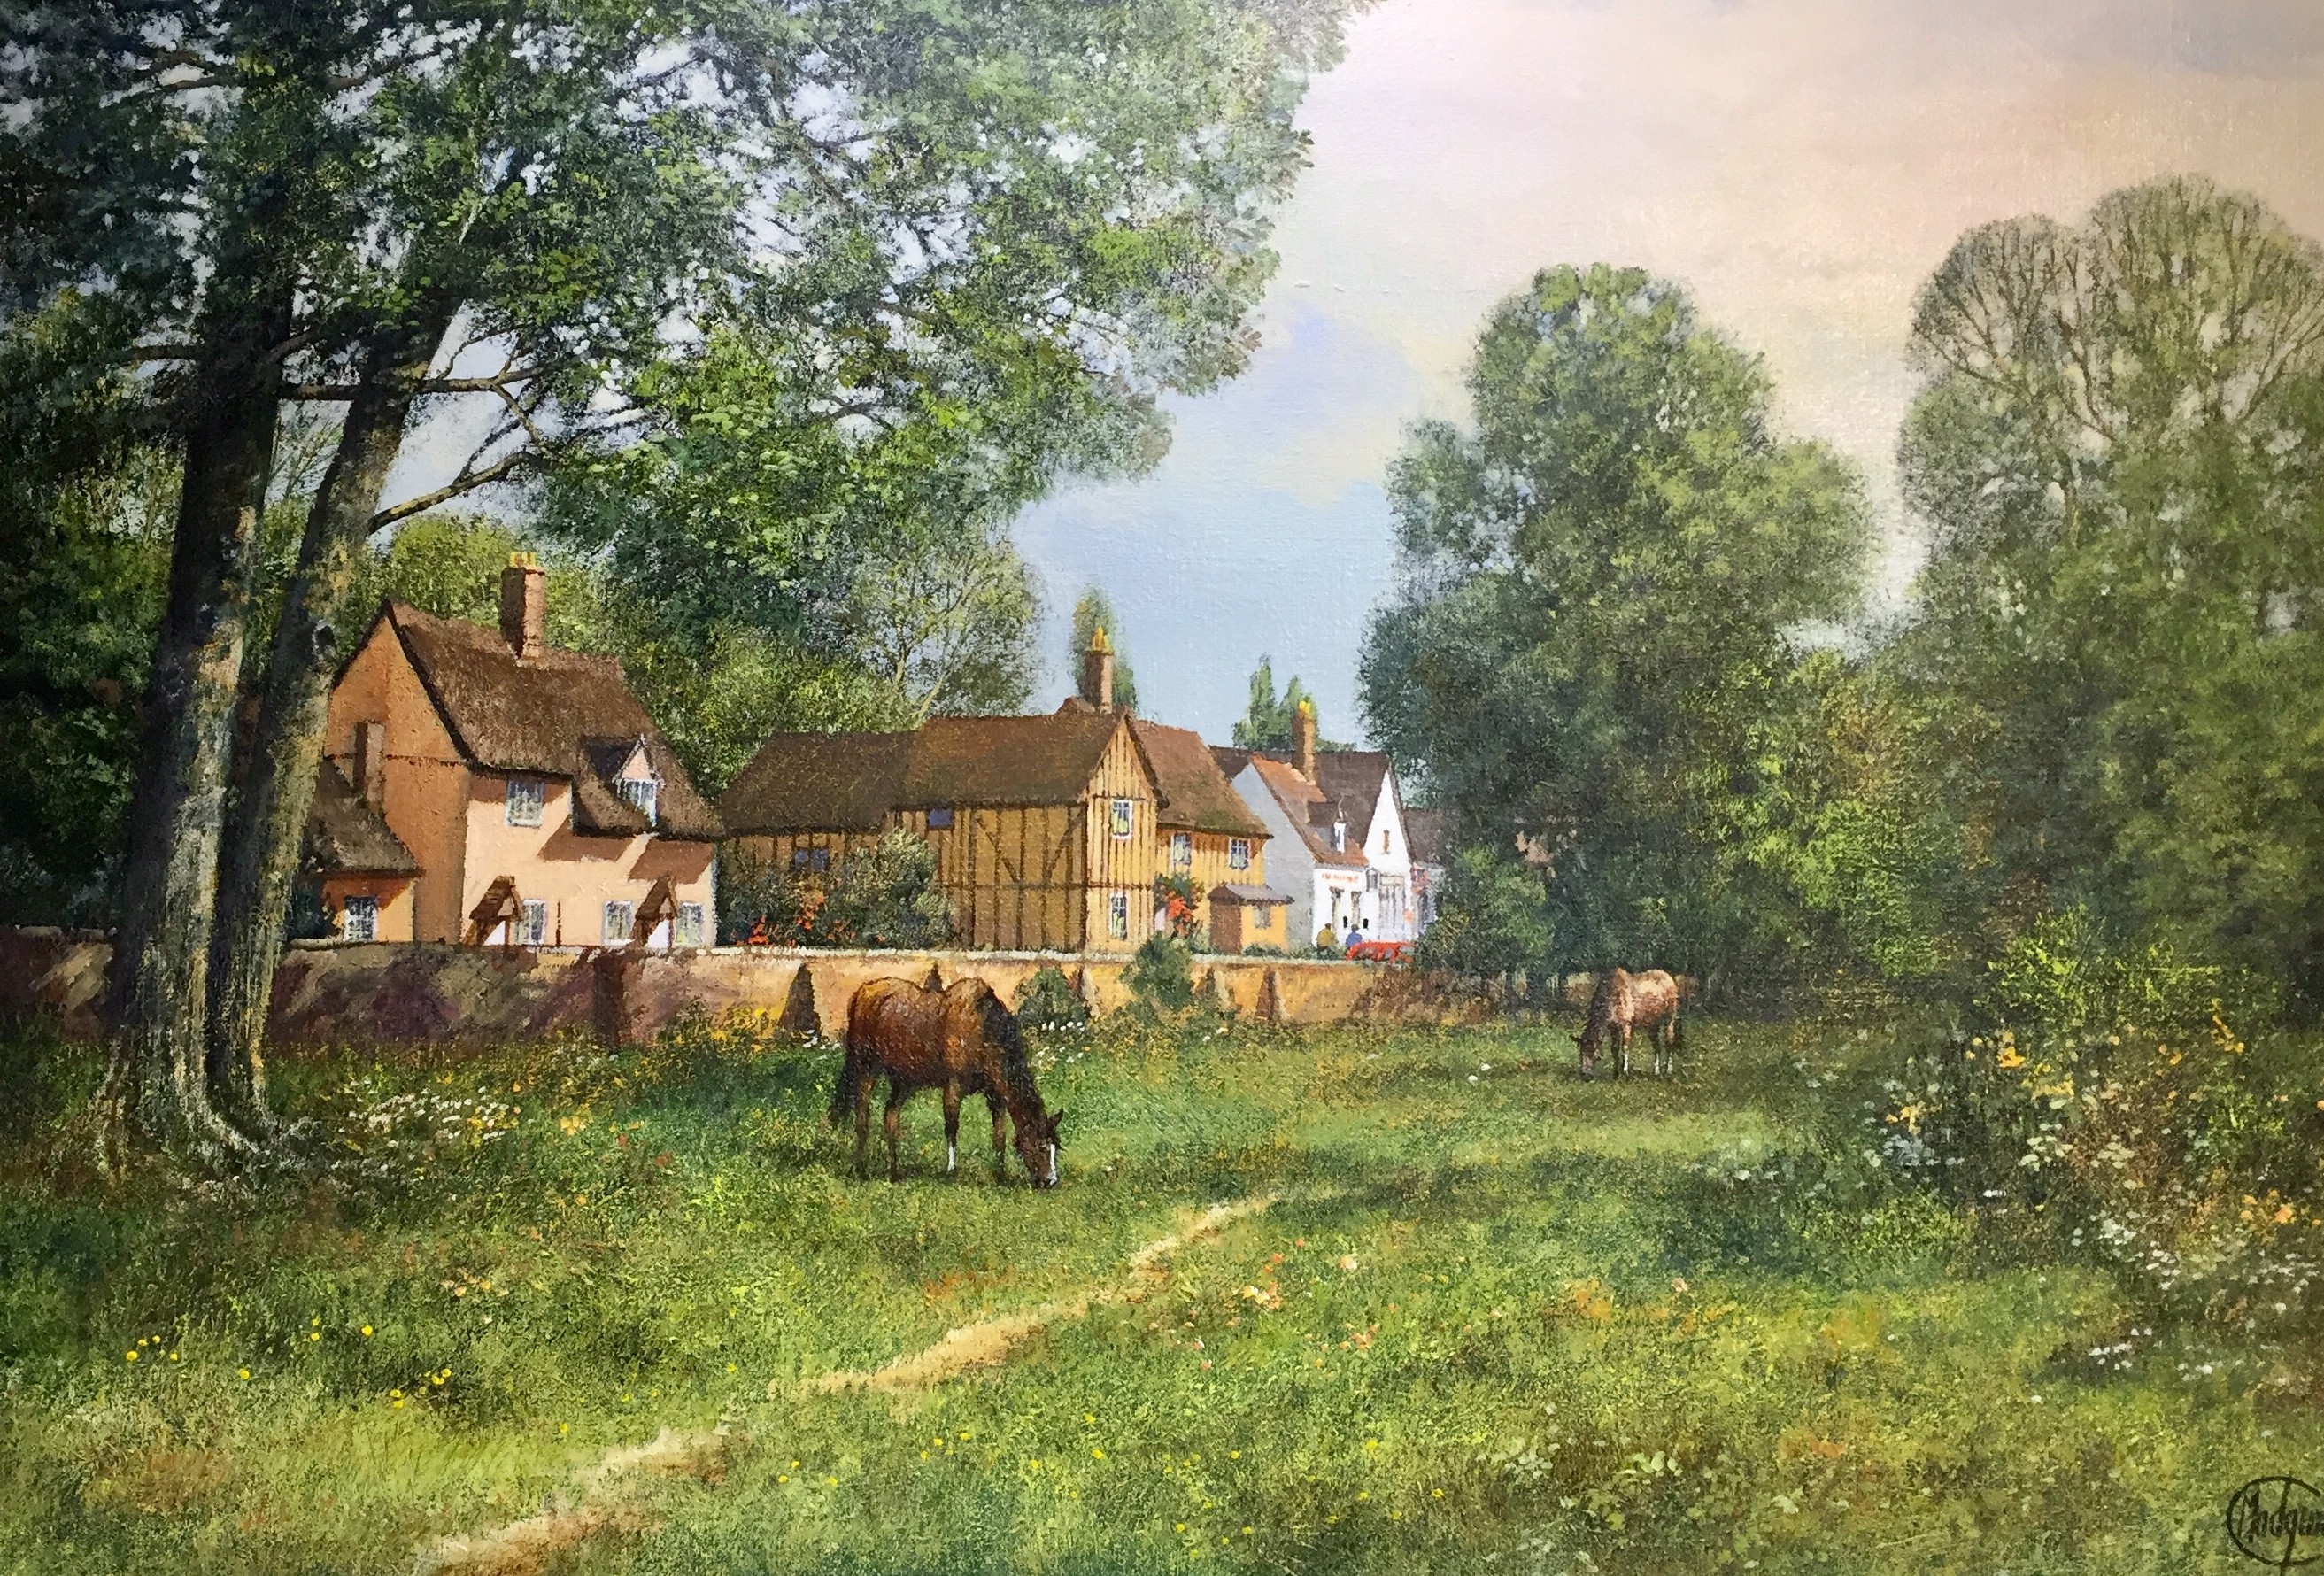 Horses Grazing at Chelsworth, Suffolk - SOLD